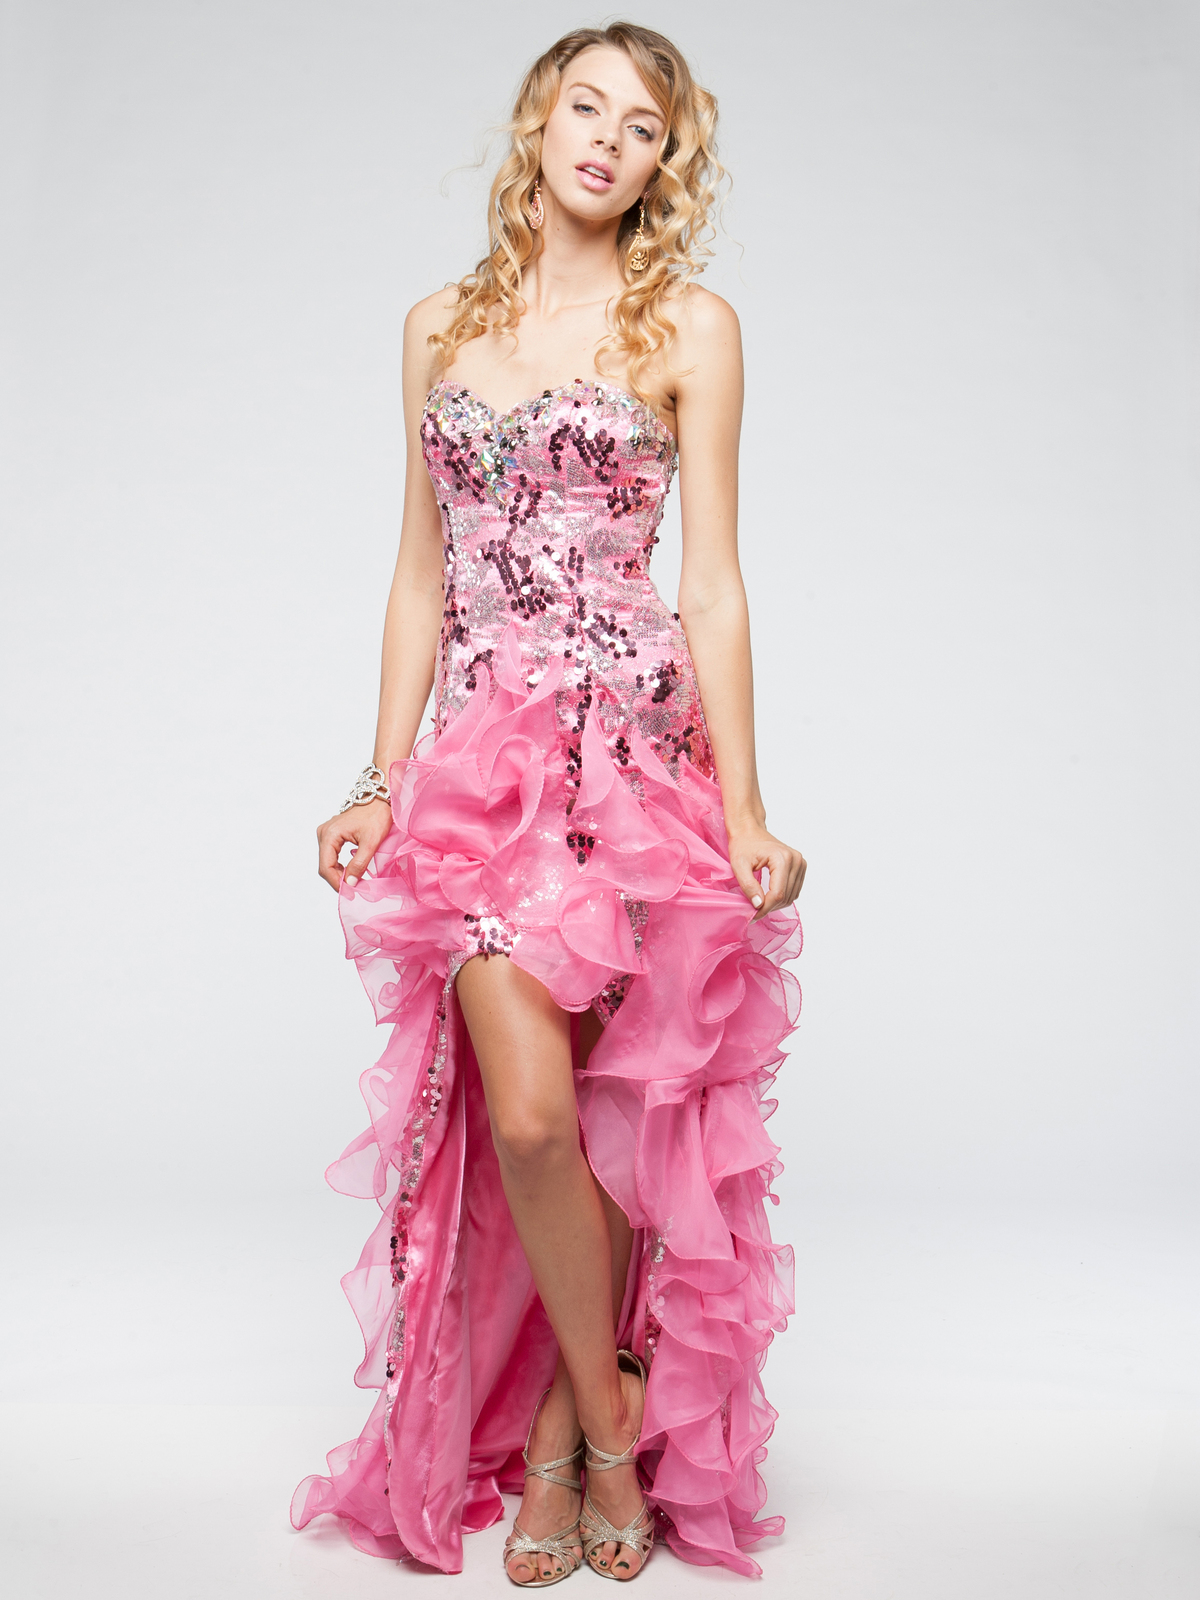 Ruffled Skirt High-low Prom Dress | Sung Boutique L.A.